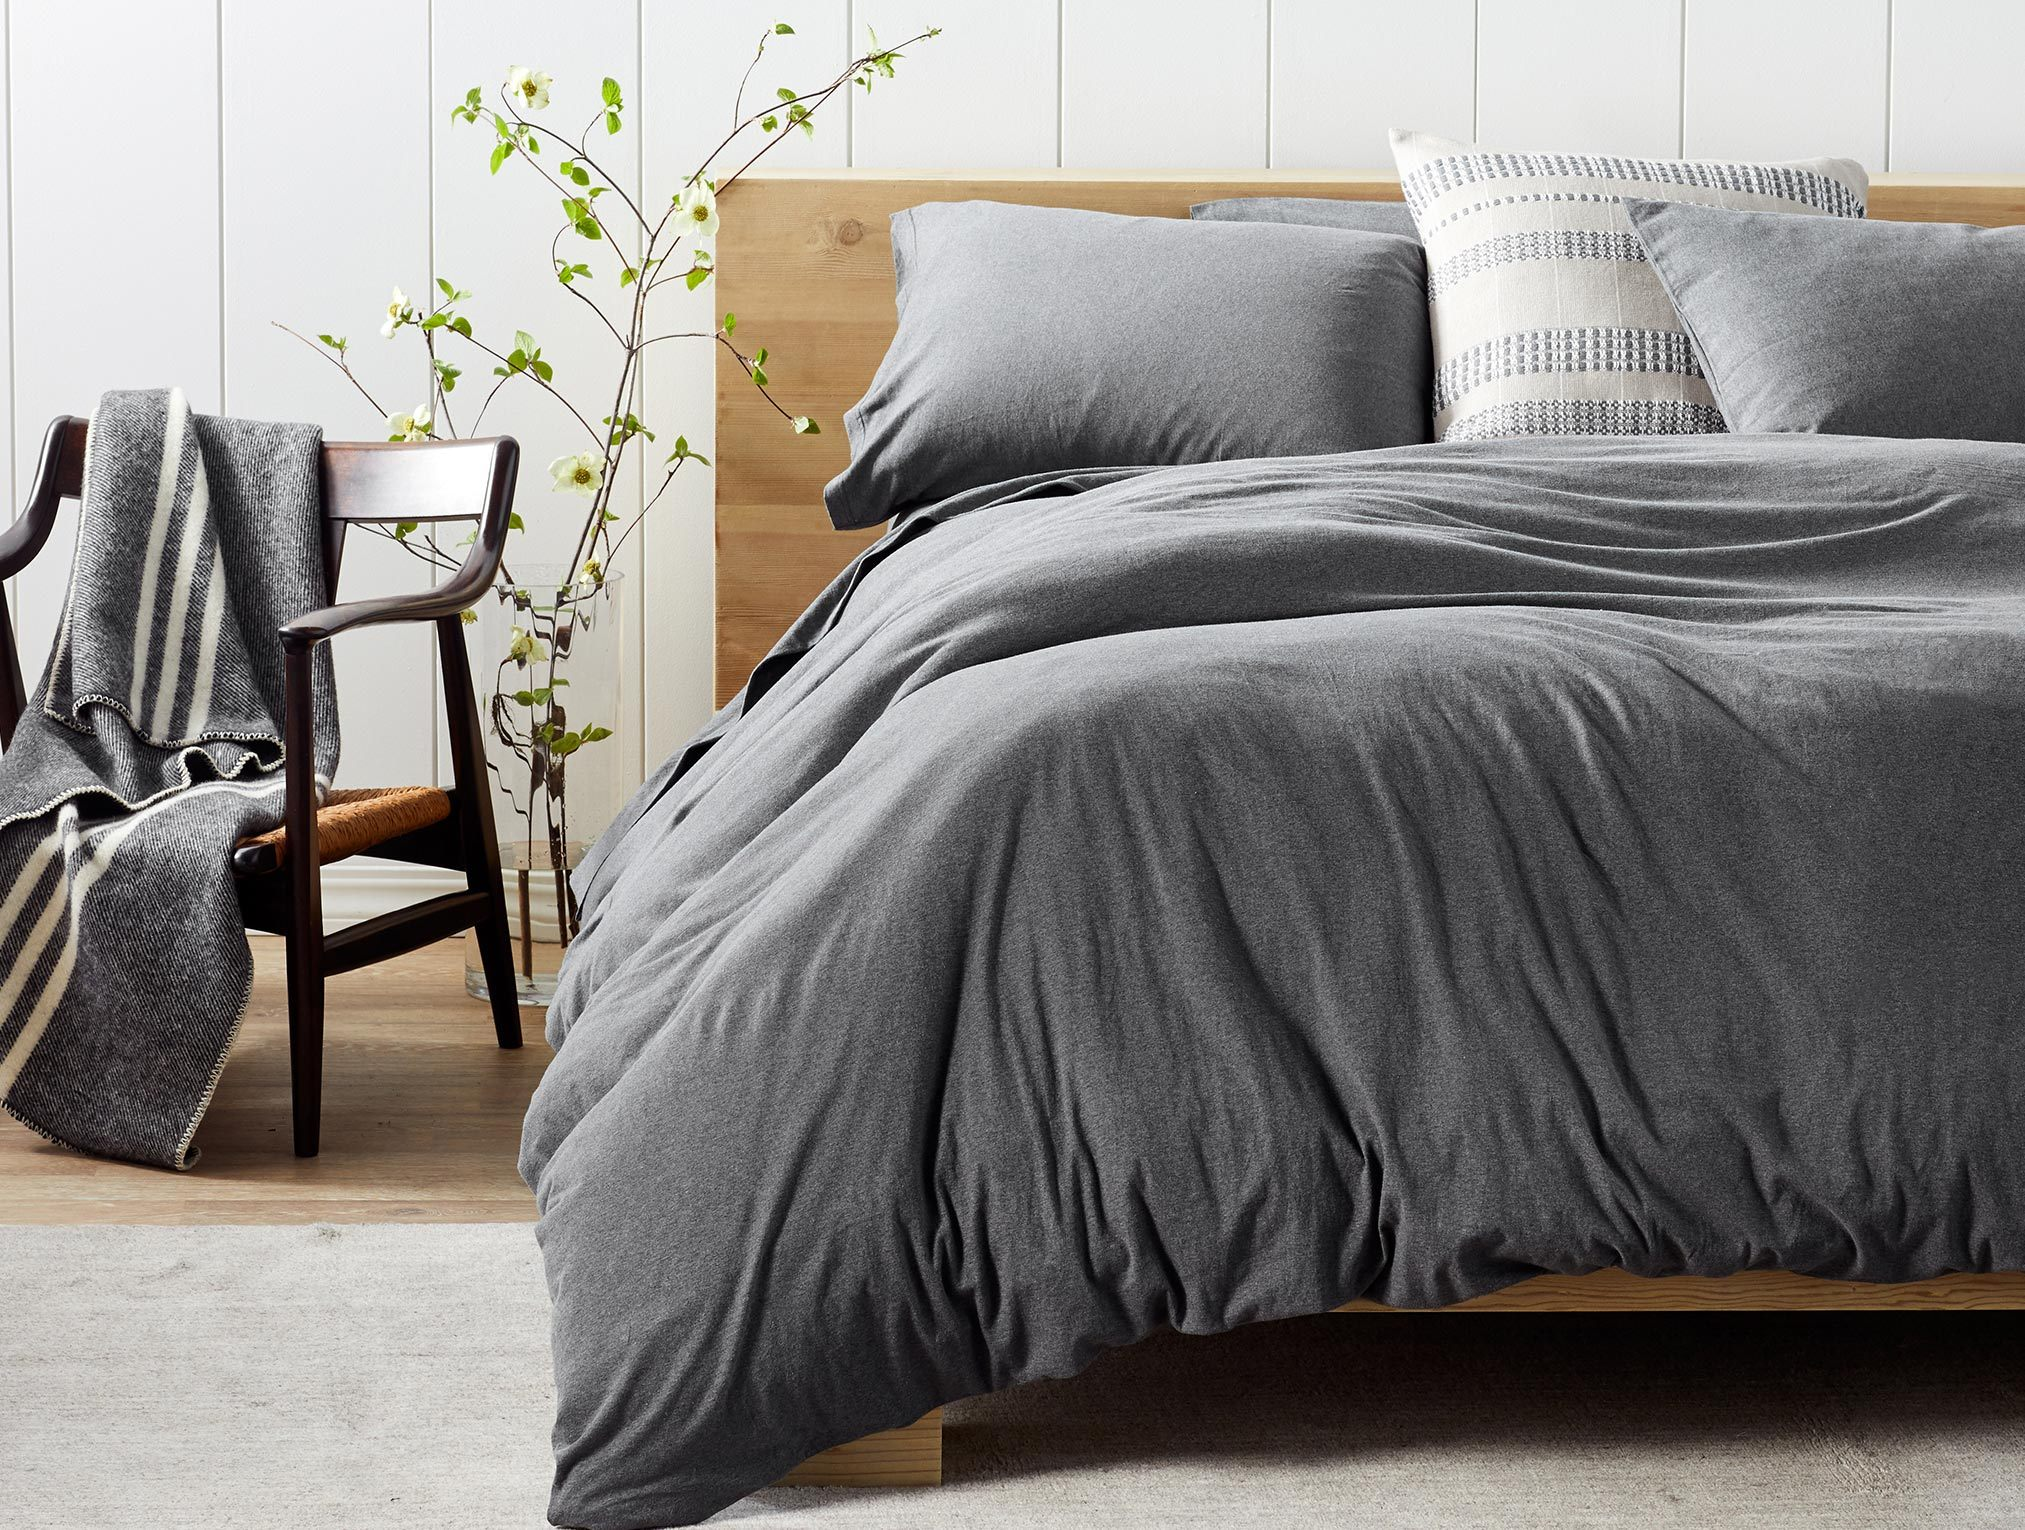 Charcoal Heather Organic Jersey Pillowcases